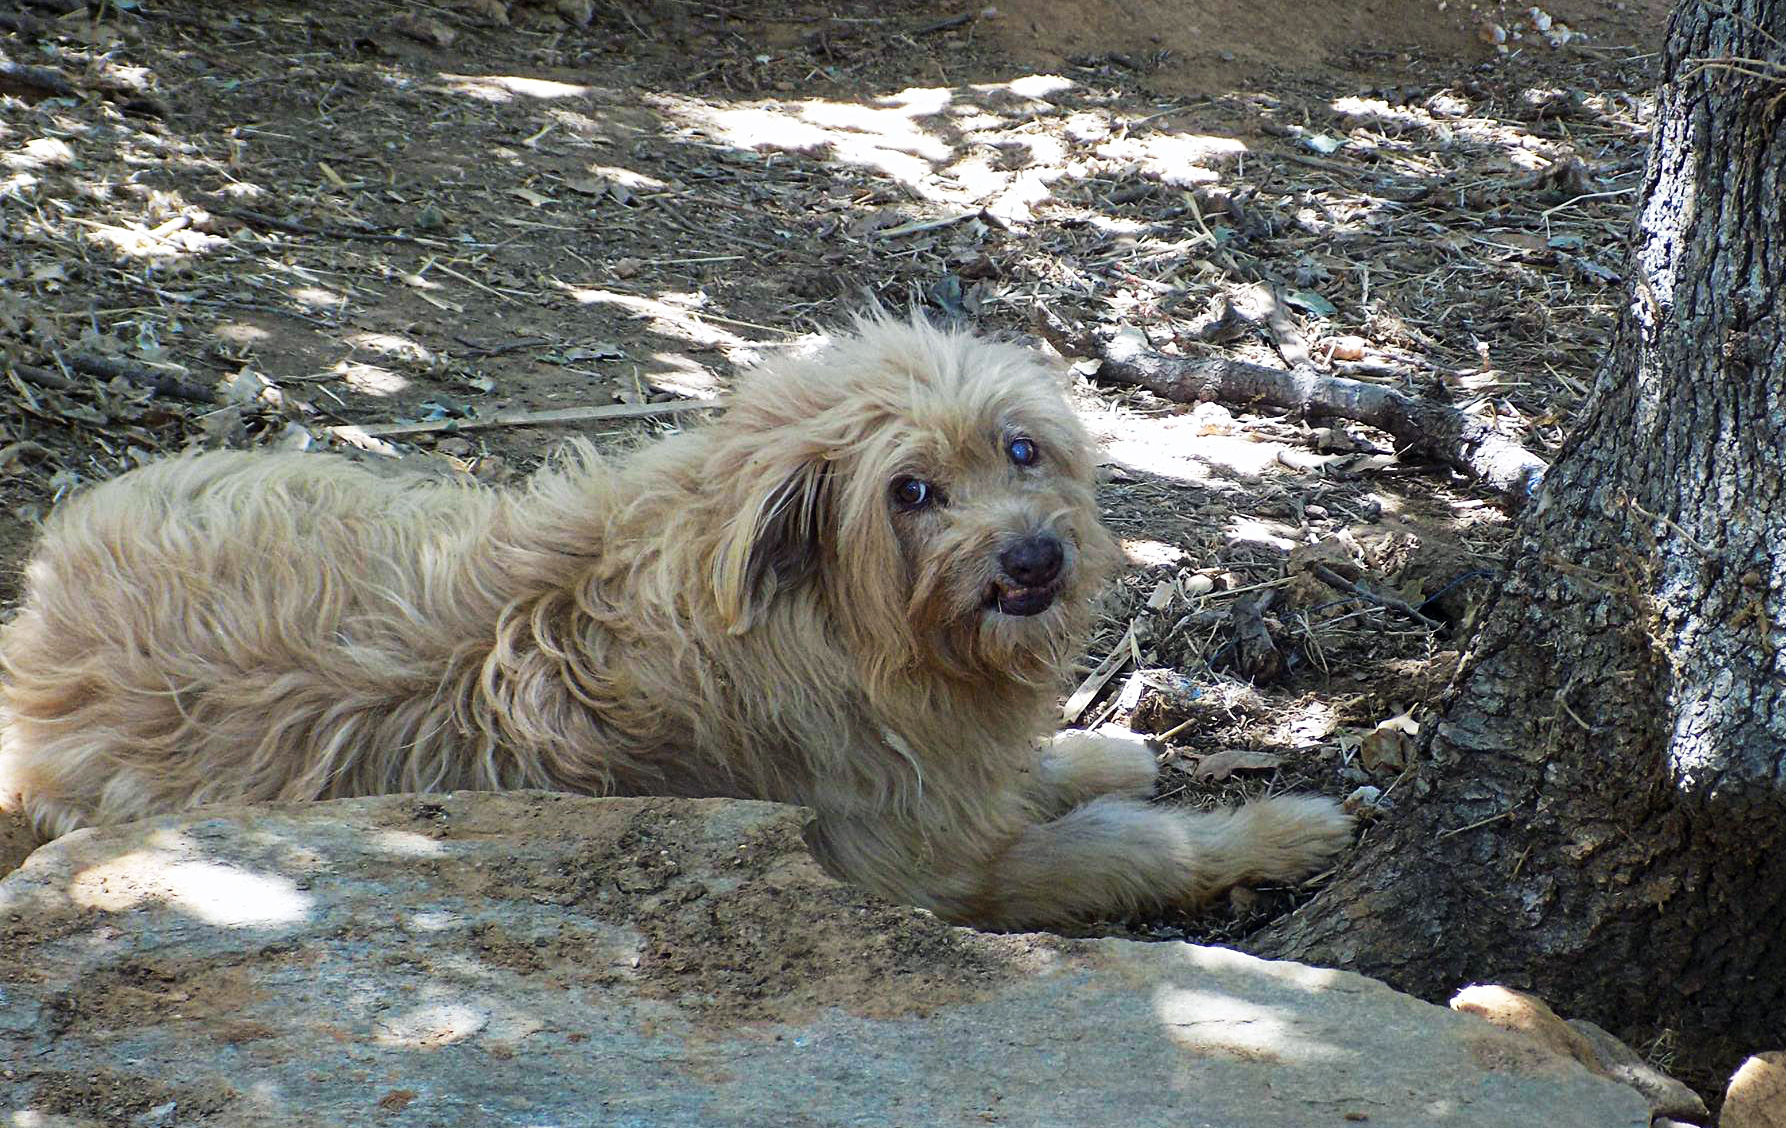 vanglouk-androsfilm-a-lost-dog-in-remata-andros-2016-dec-2